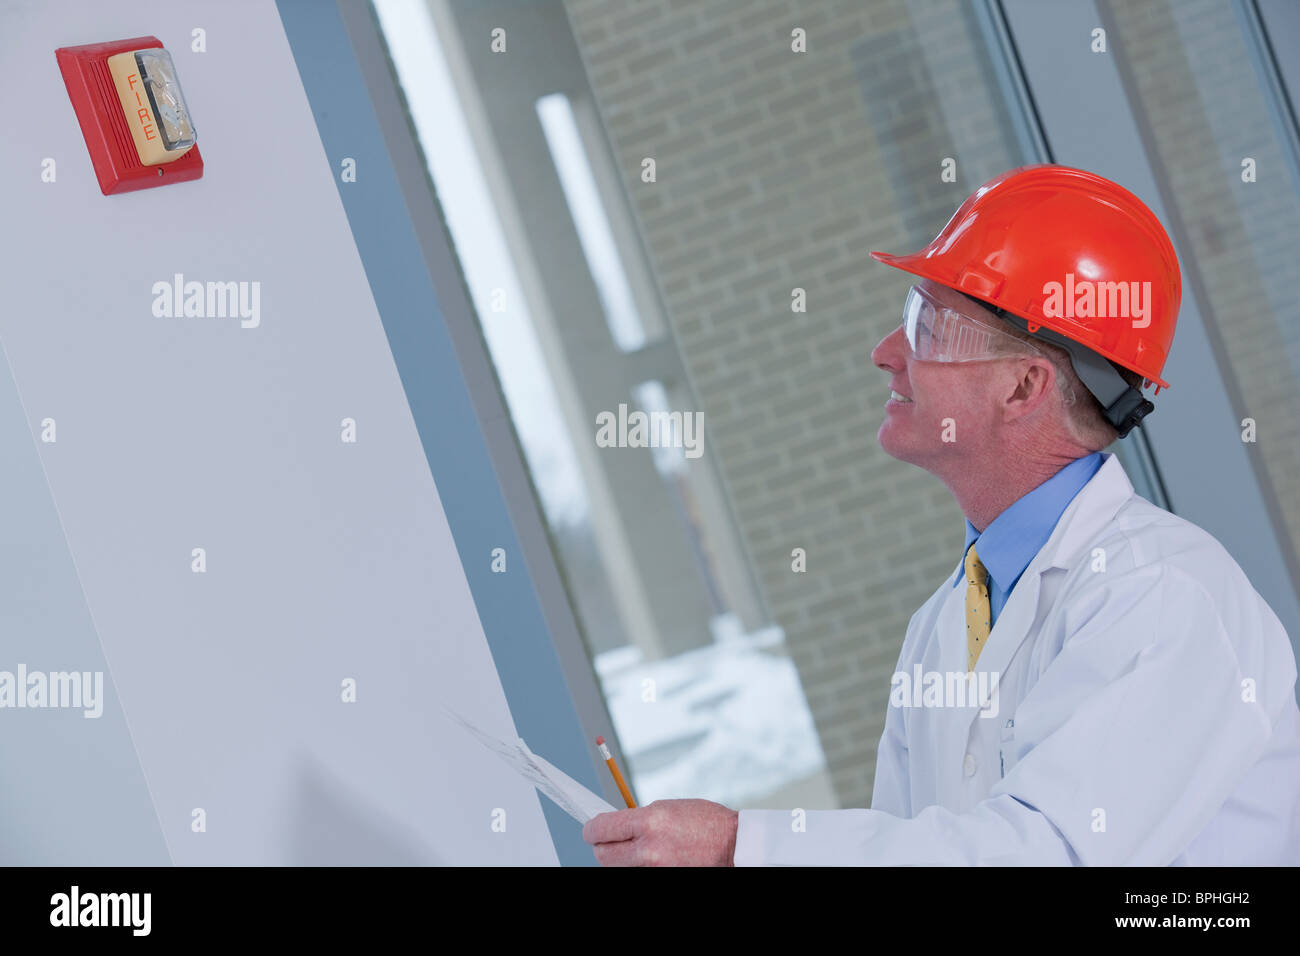 Fire Alarm Stock Photos Amp Fire Alarm Stock Images Alamy